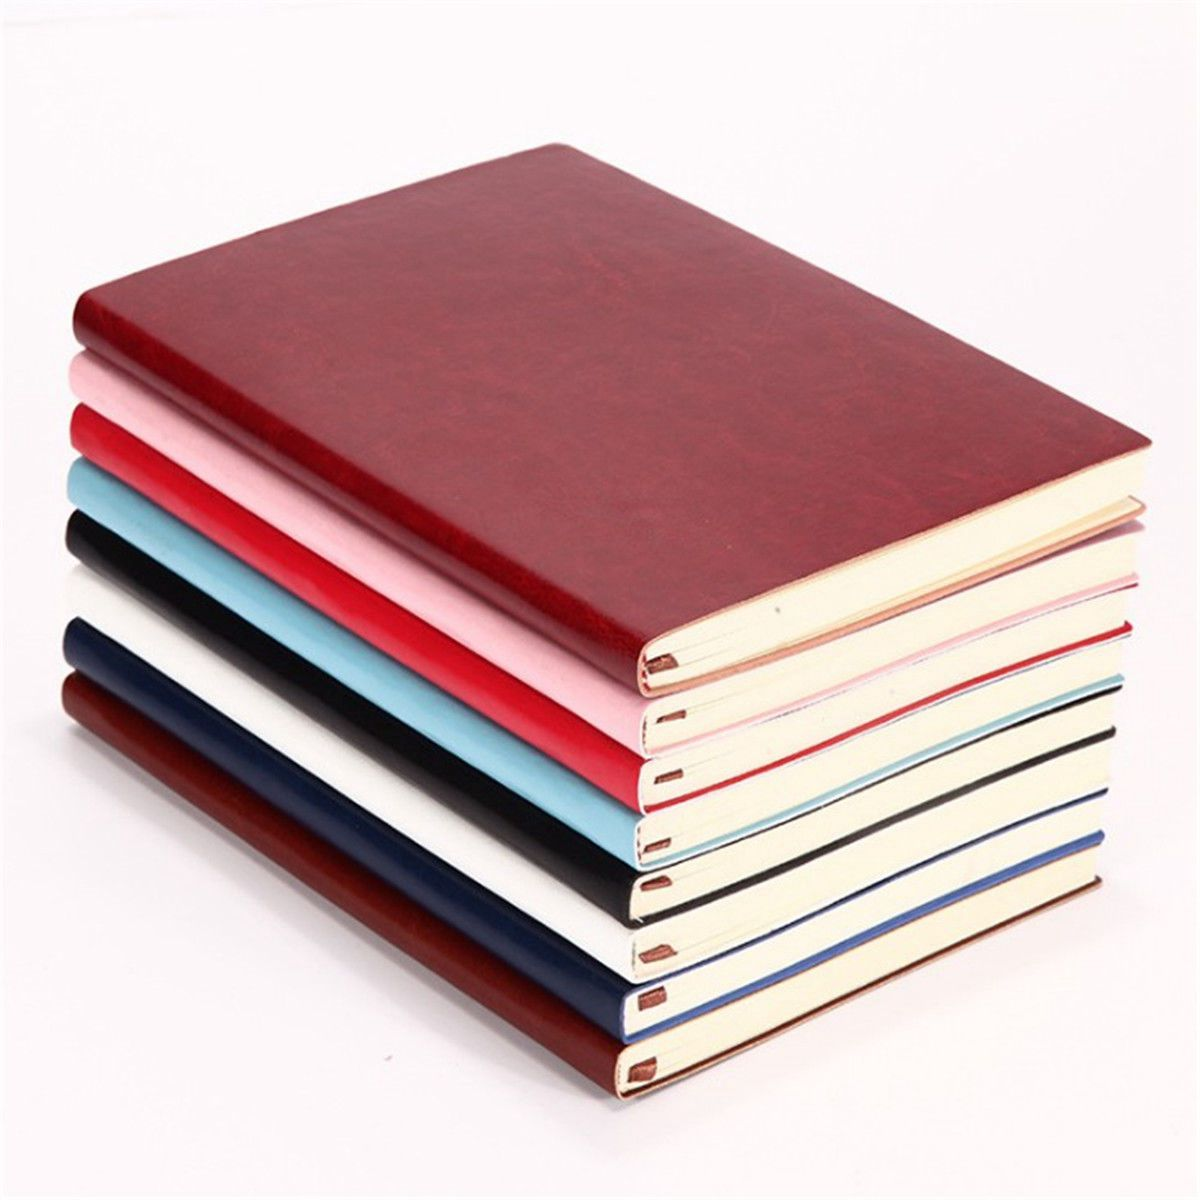 6 Color Random Soft Cover PU Leather Notebook Writing Journal 100 Page Lined Diary Book 100 page 8